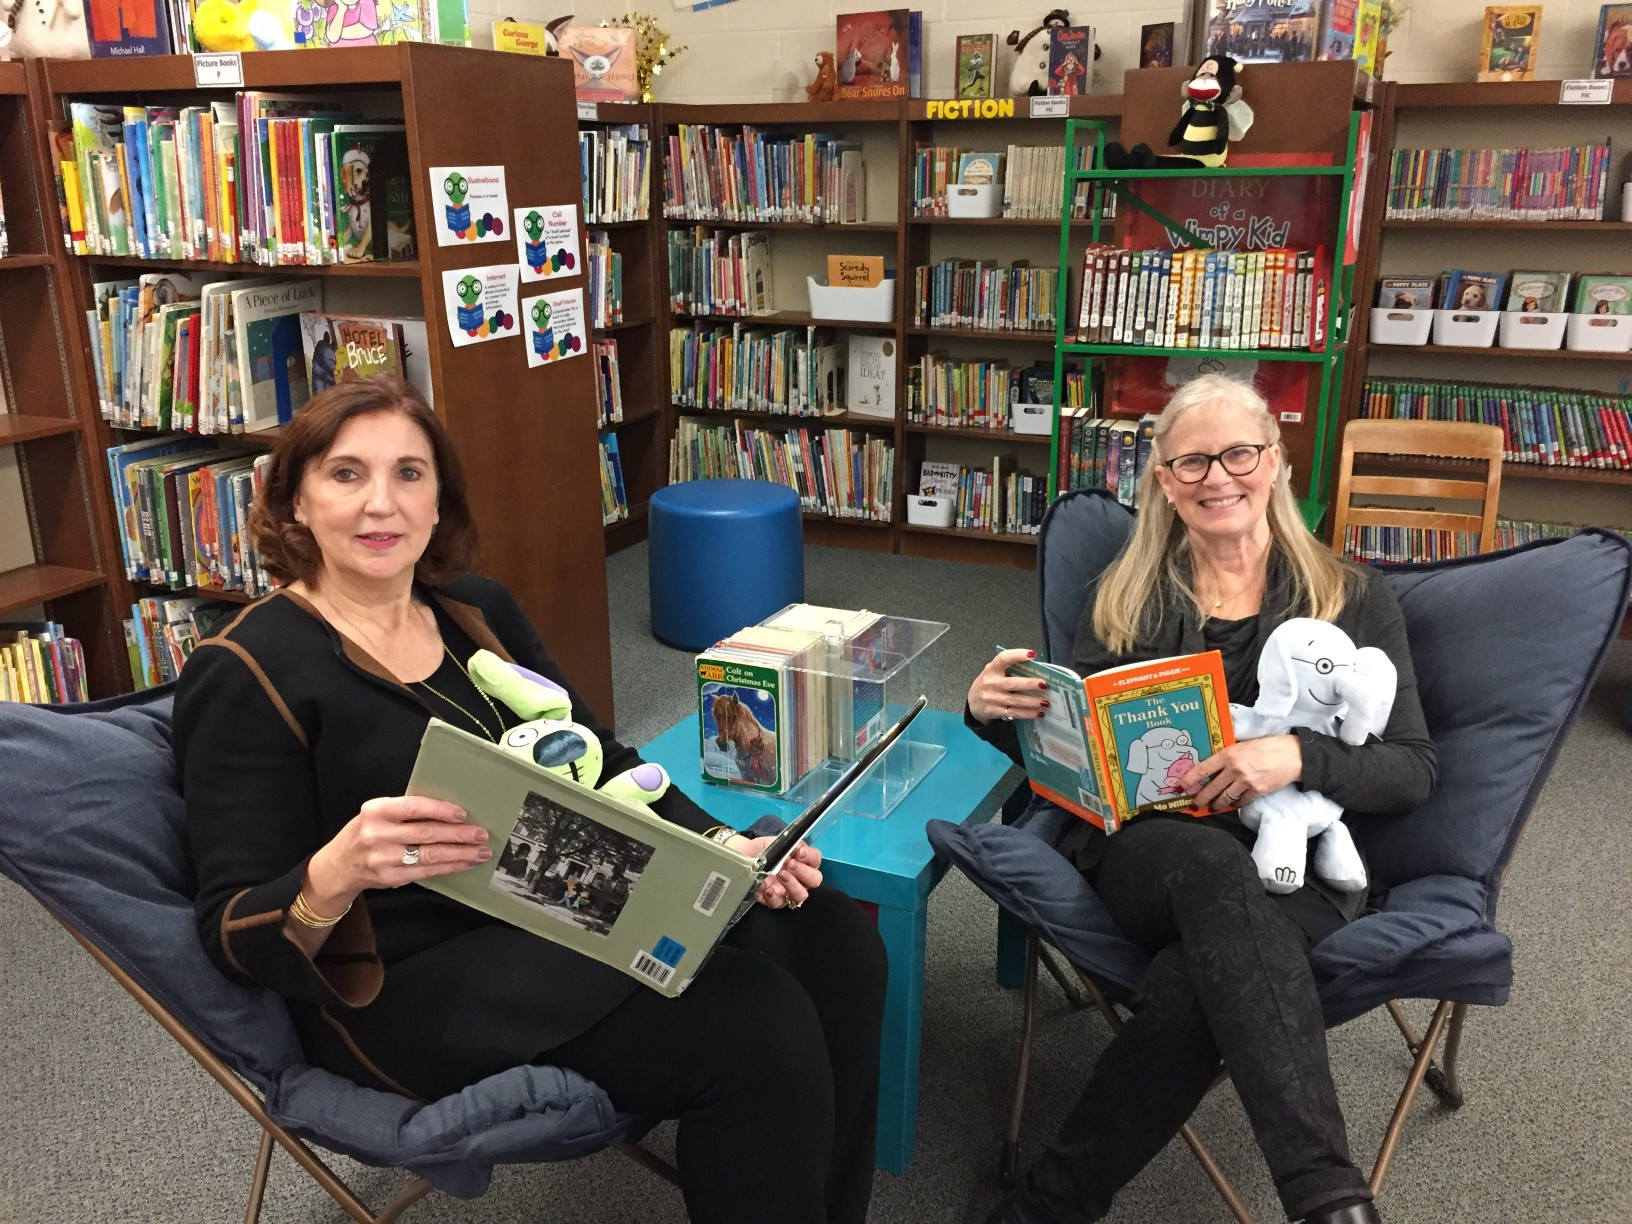 Mrs. Pana and Mrs. Blaustein in the library